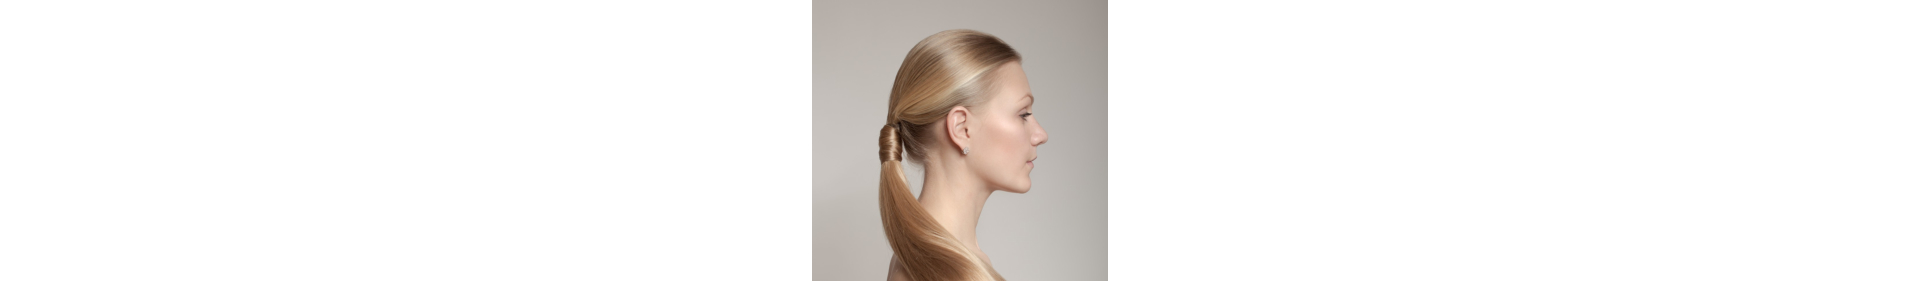 woman with a hair tail